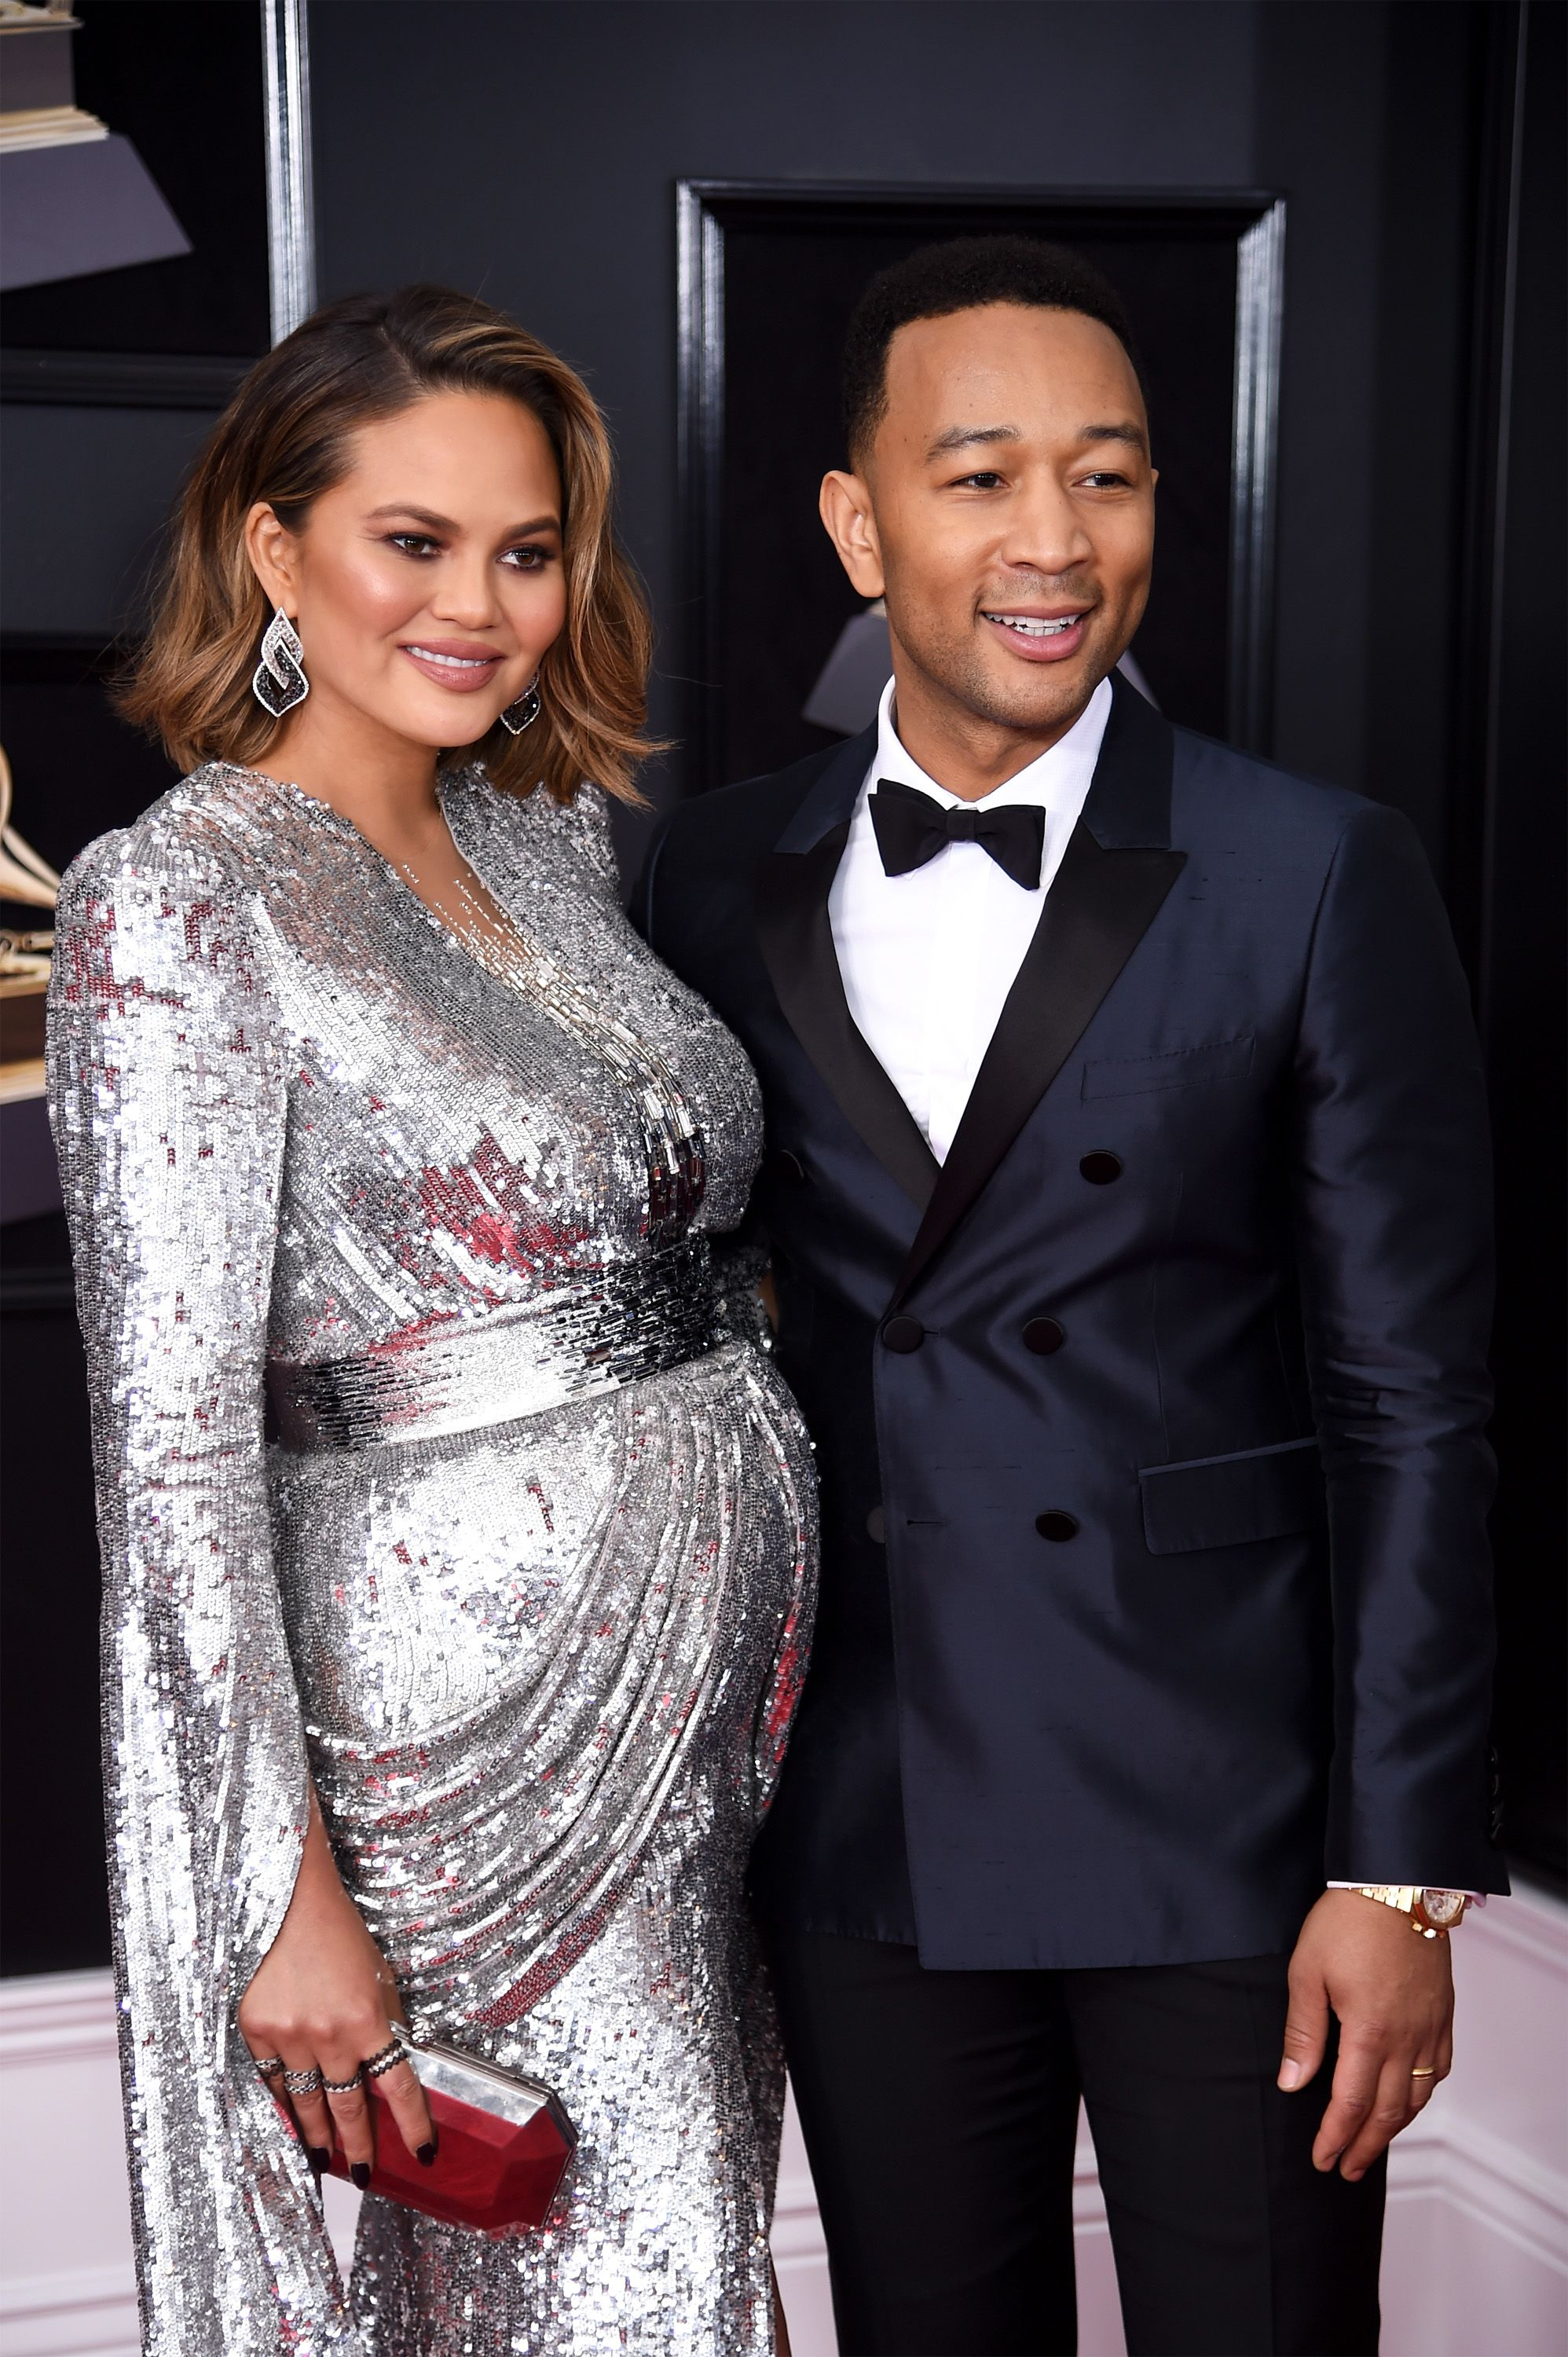 Chrissy Teigen and John Legend at the Grammy Awards on January 28, 2018 in New York | Photo: Getty Images